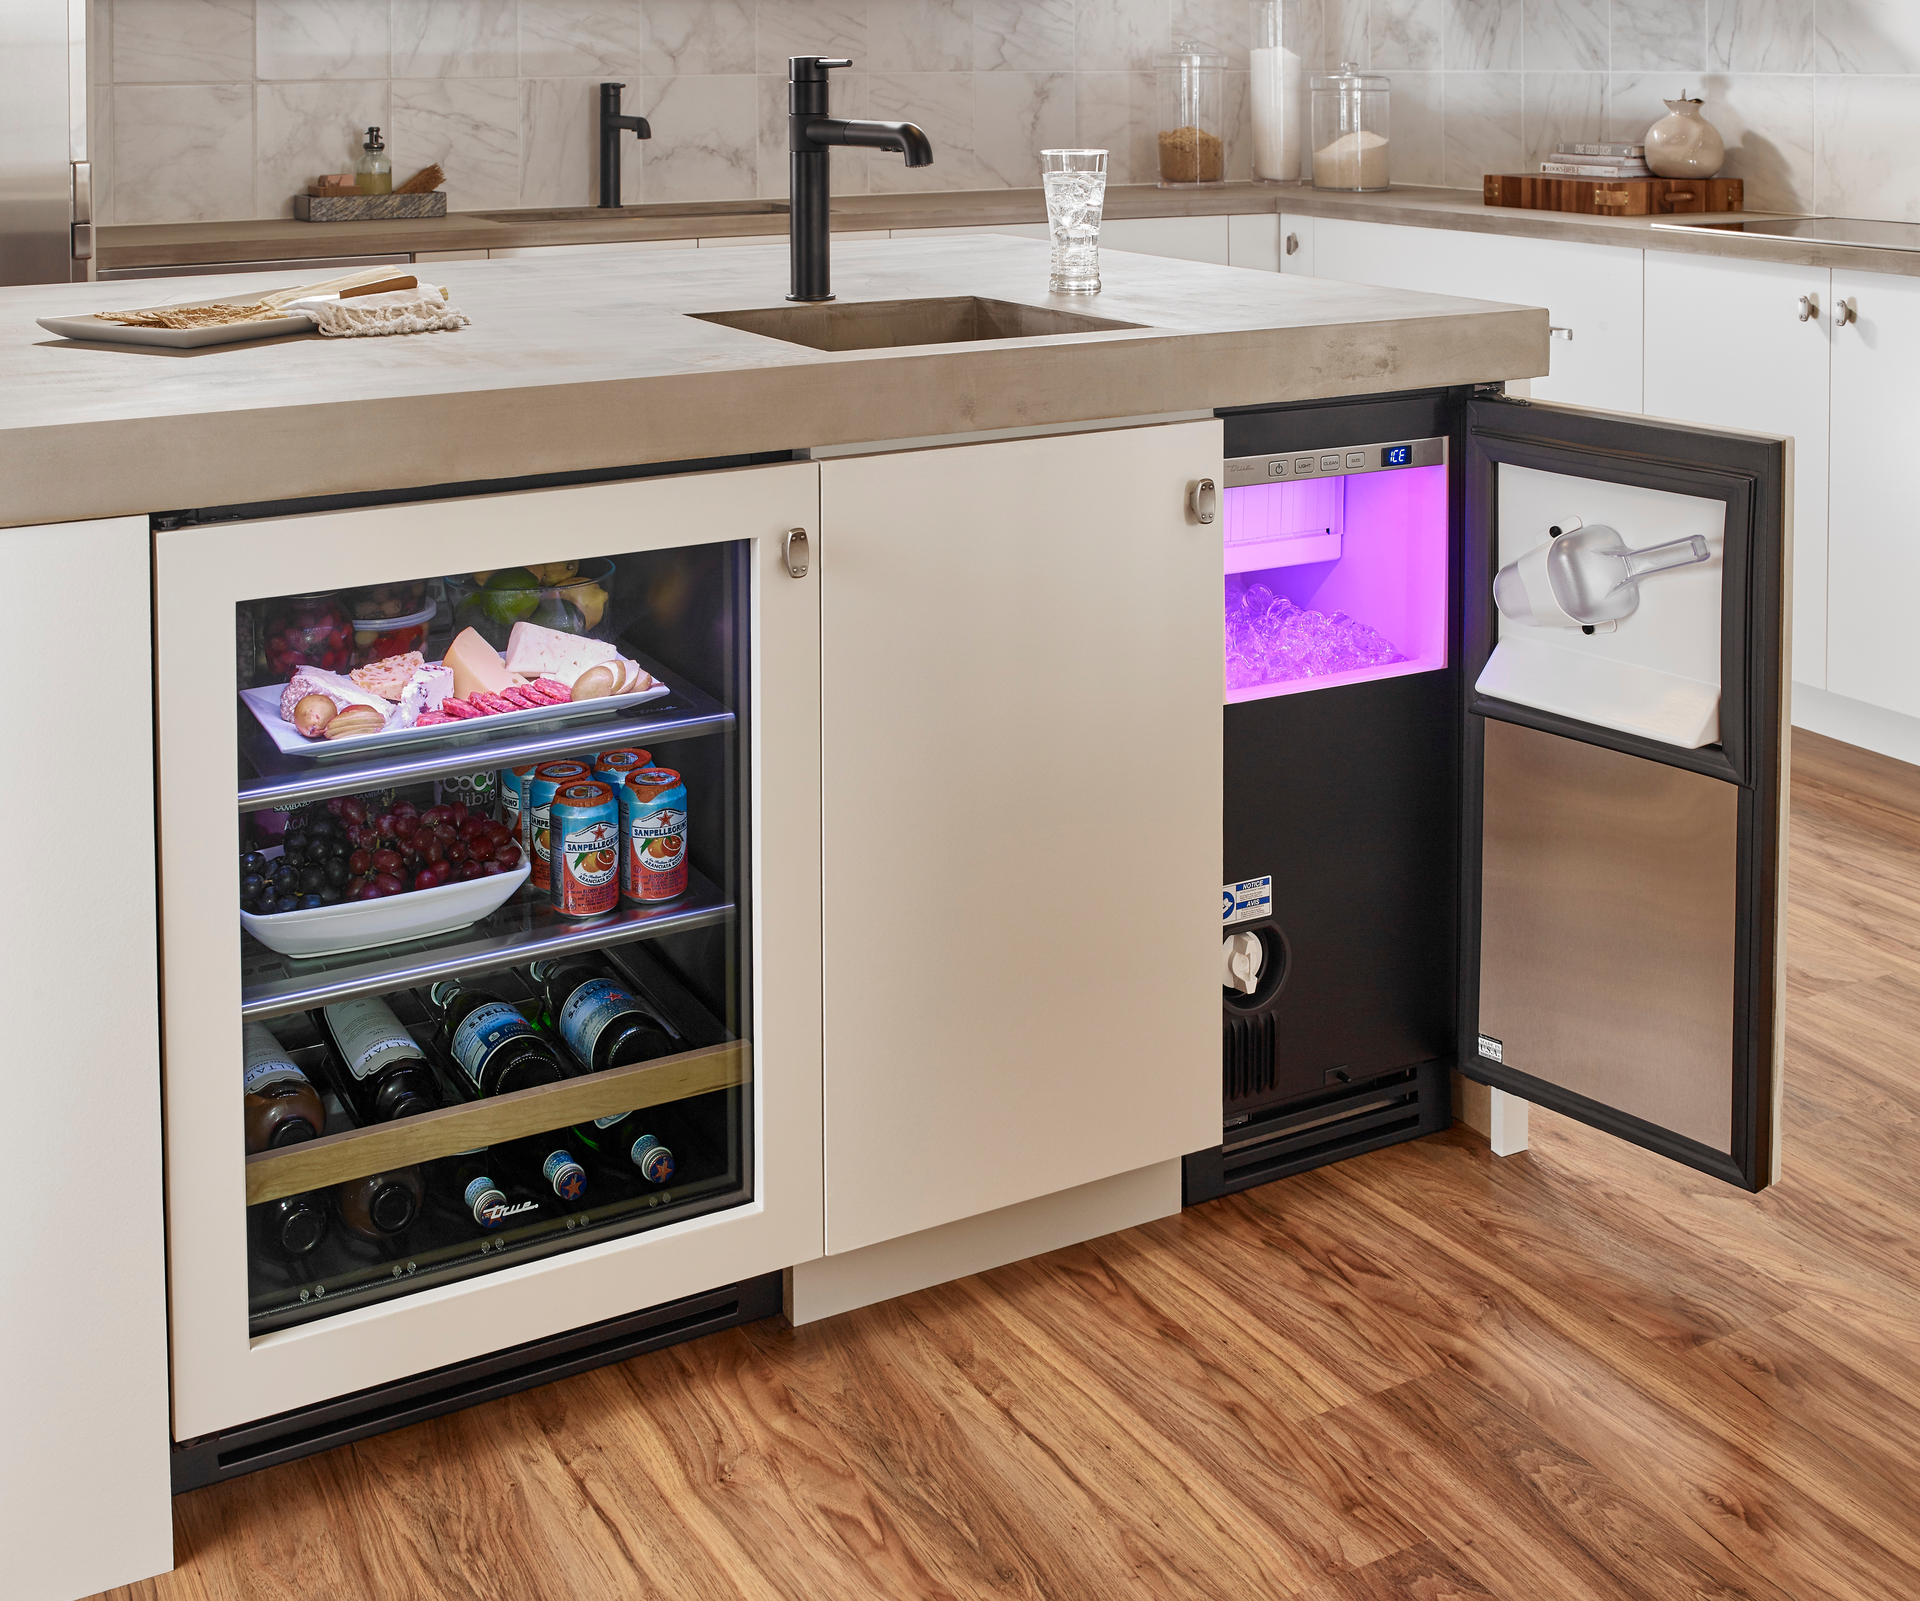 True Clear Ice Machine For Residential Pro This Undercounter Ice Machine Is The Highest Performing Most Energy Kitchen Clear Ice Machine Concrete Countertops